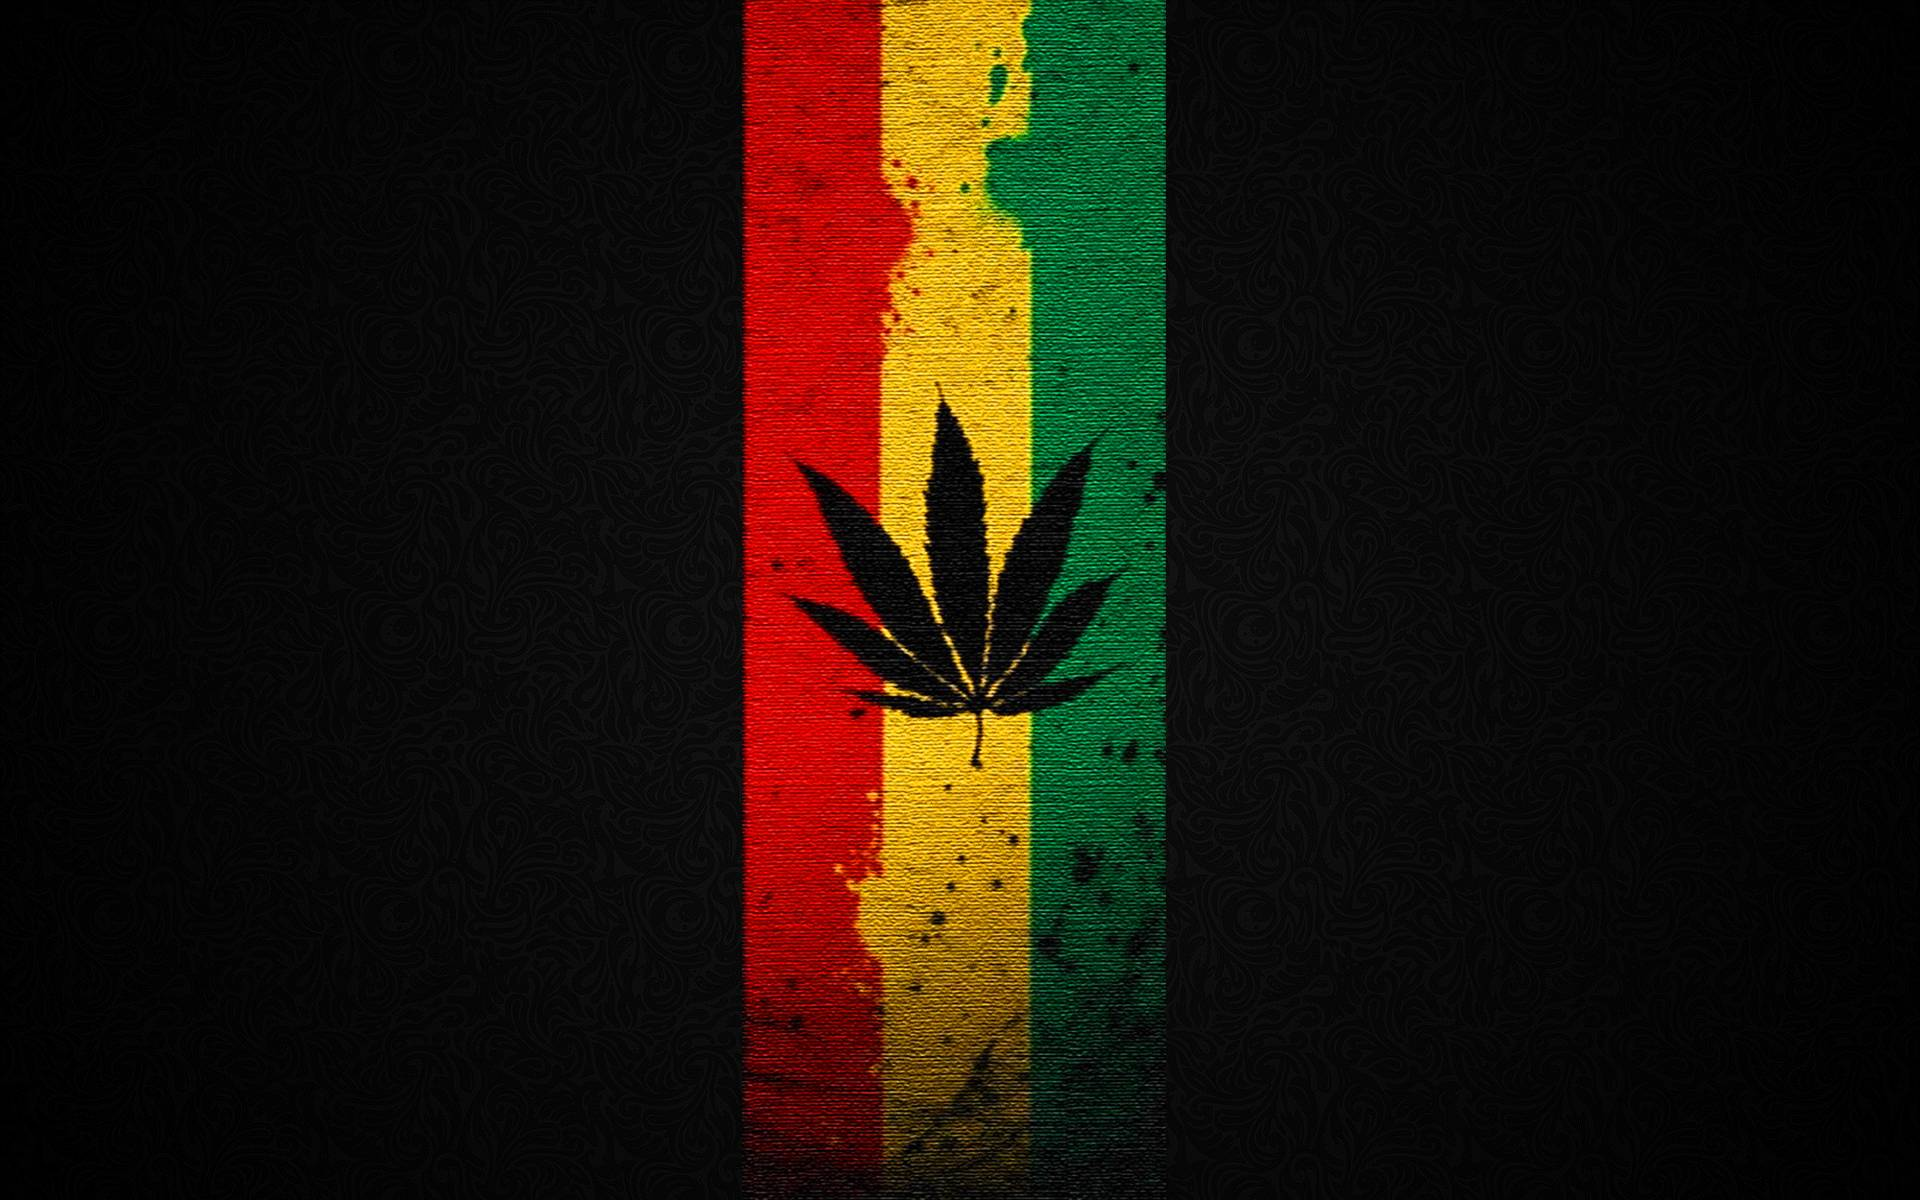 Wallpaper iphone rasta - Wallpaper Minimalism Grass Rasta Rastaman Hemp Ganja Wilted